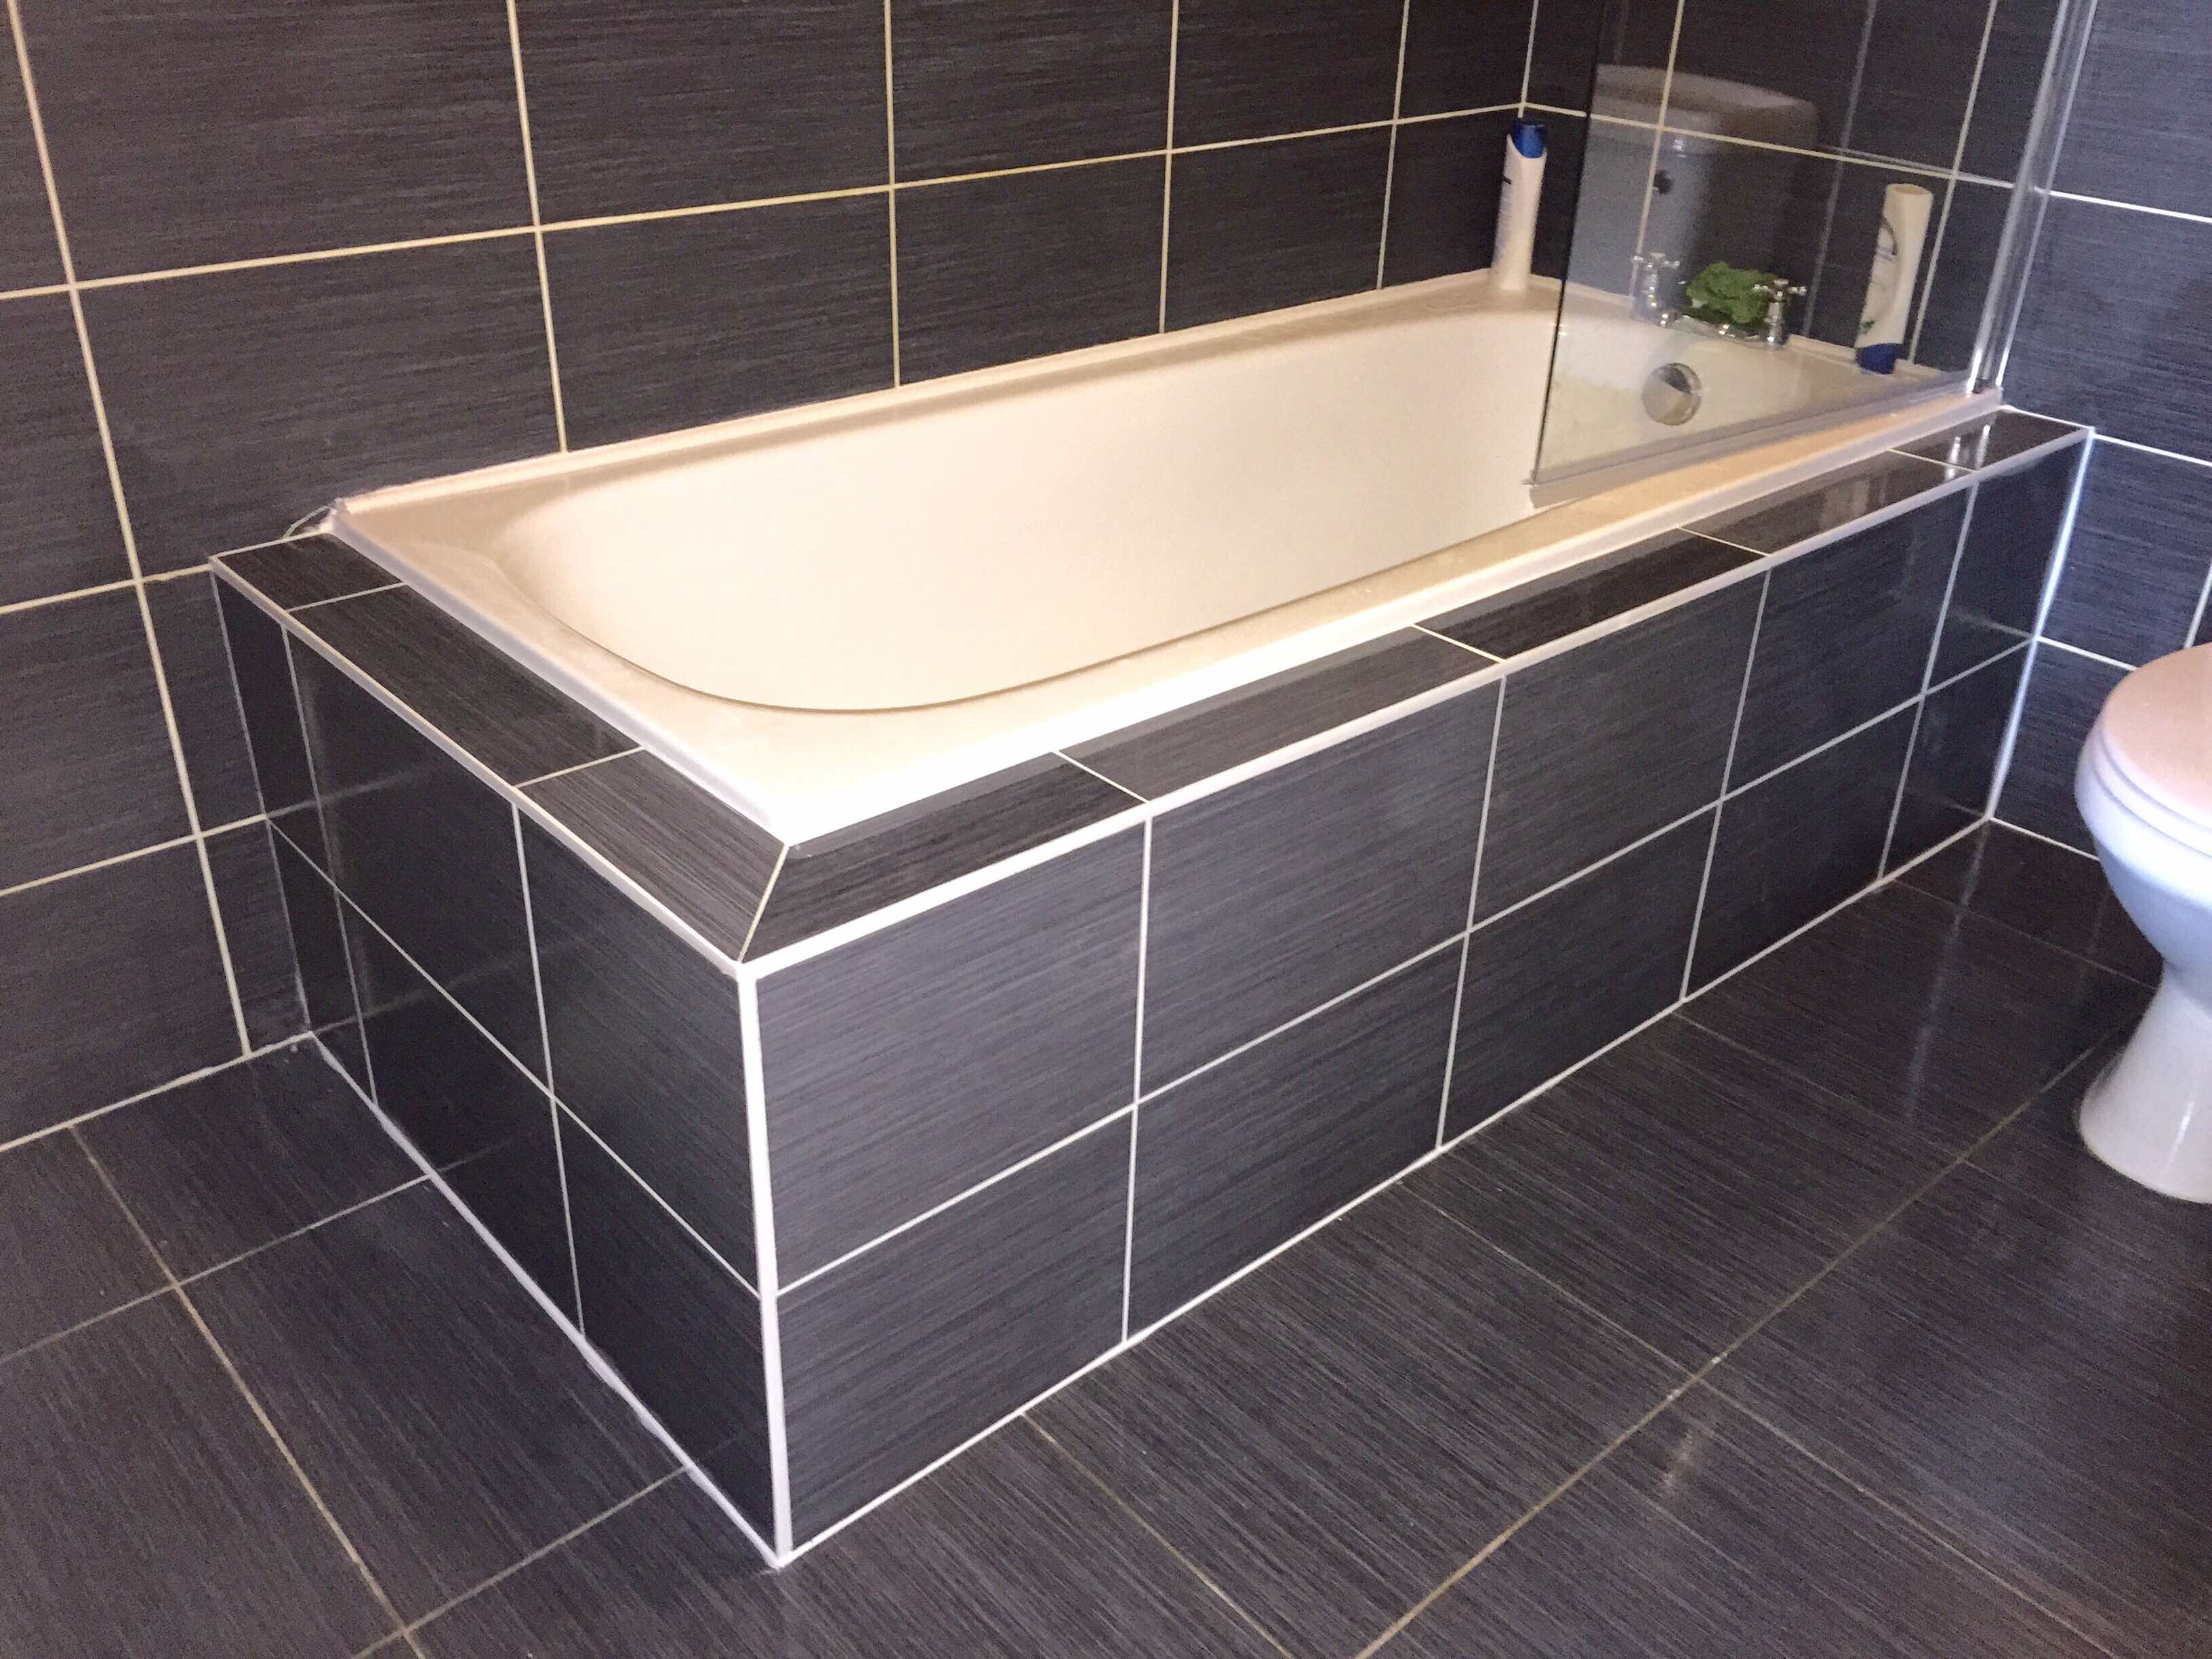 New Bath Tiling in Arklow - Prima Tiling